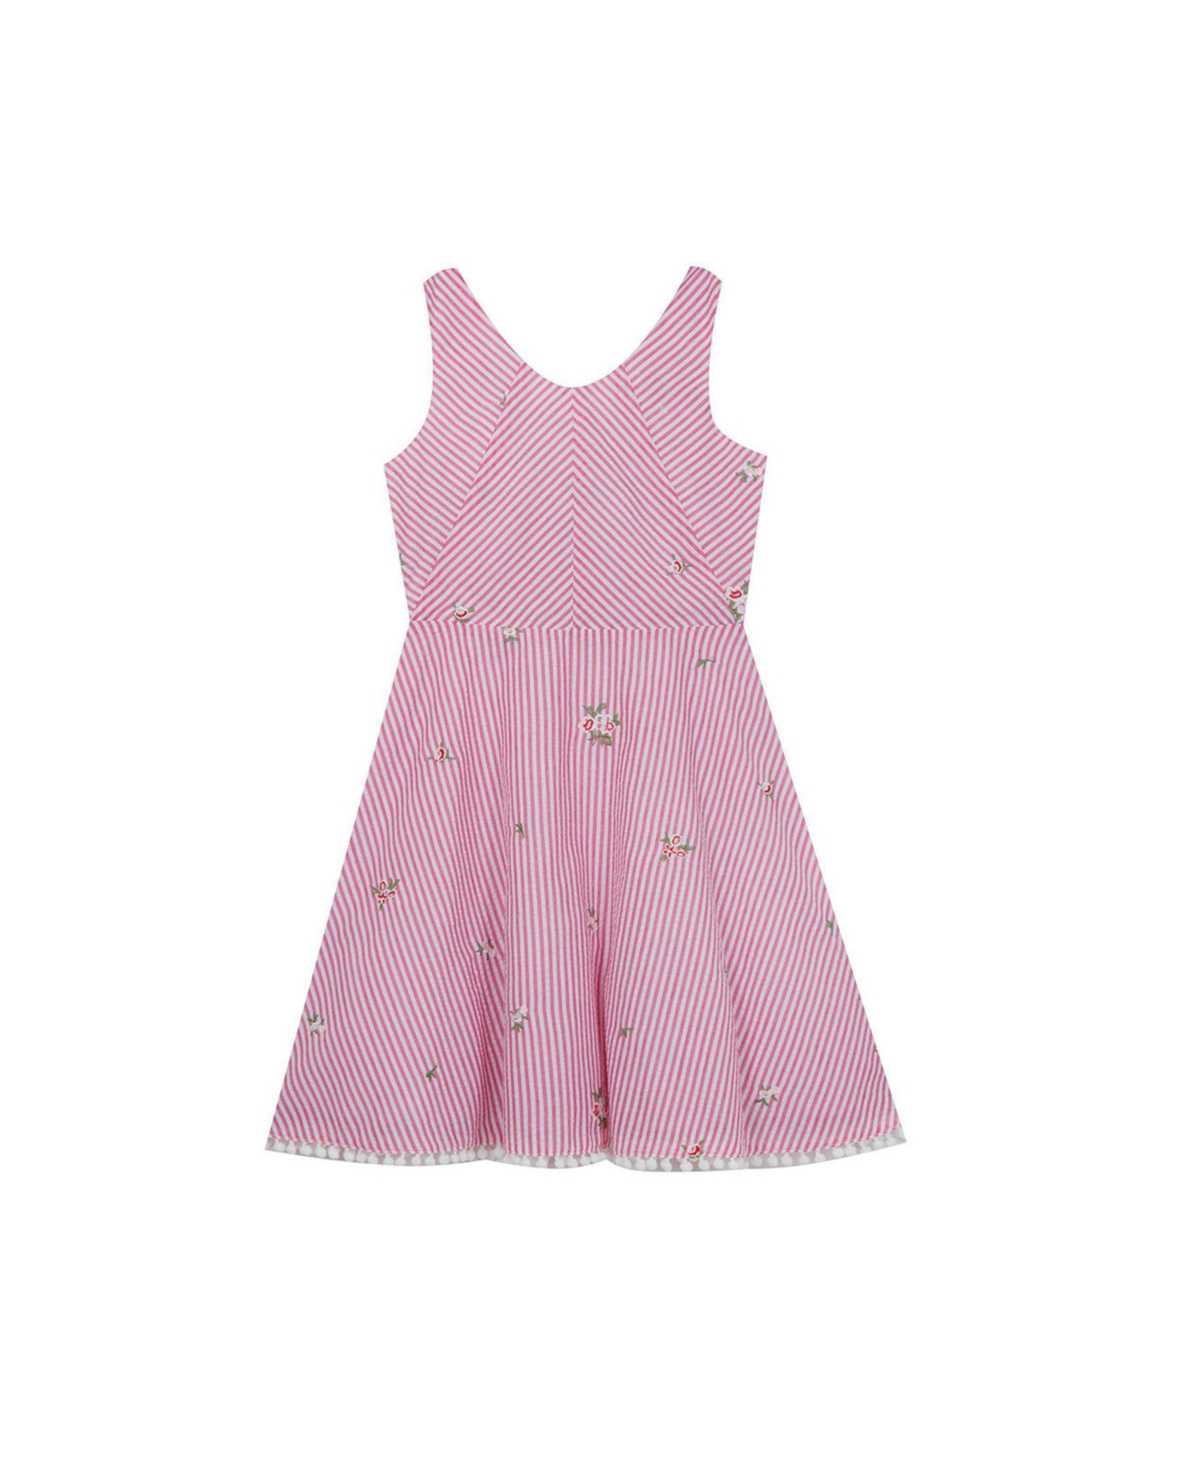 19165806 fpx - Kids & Baby Clothing